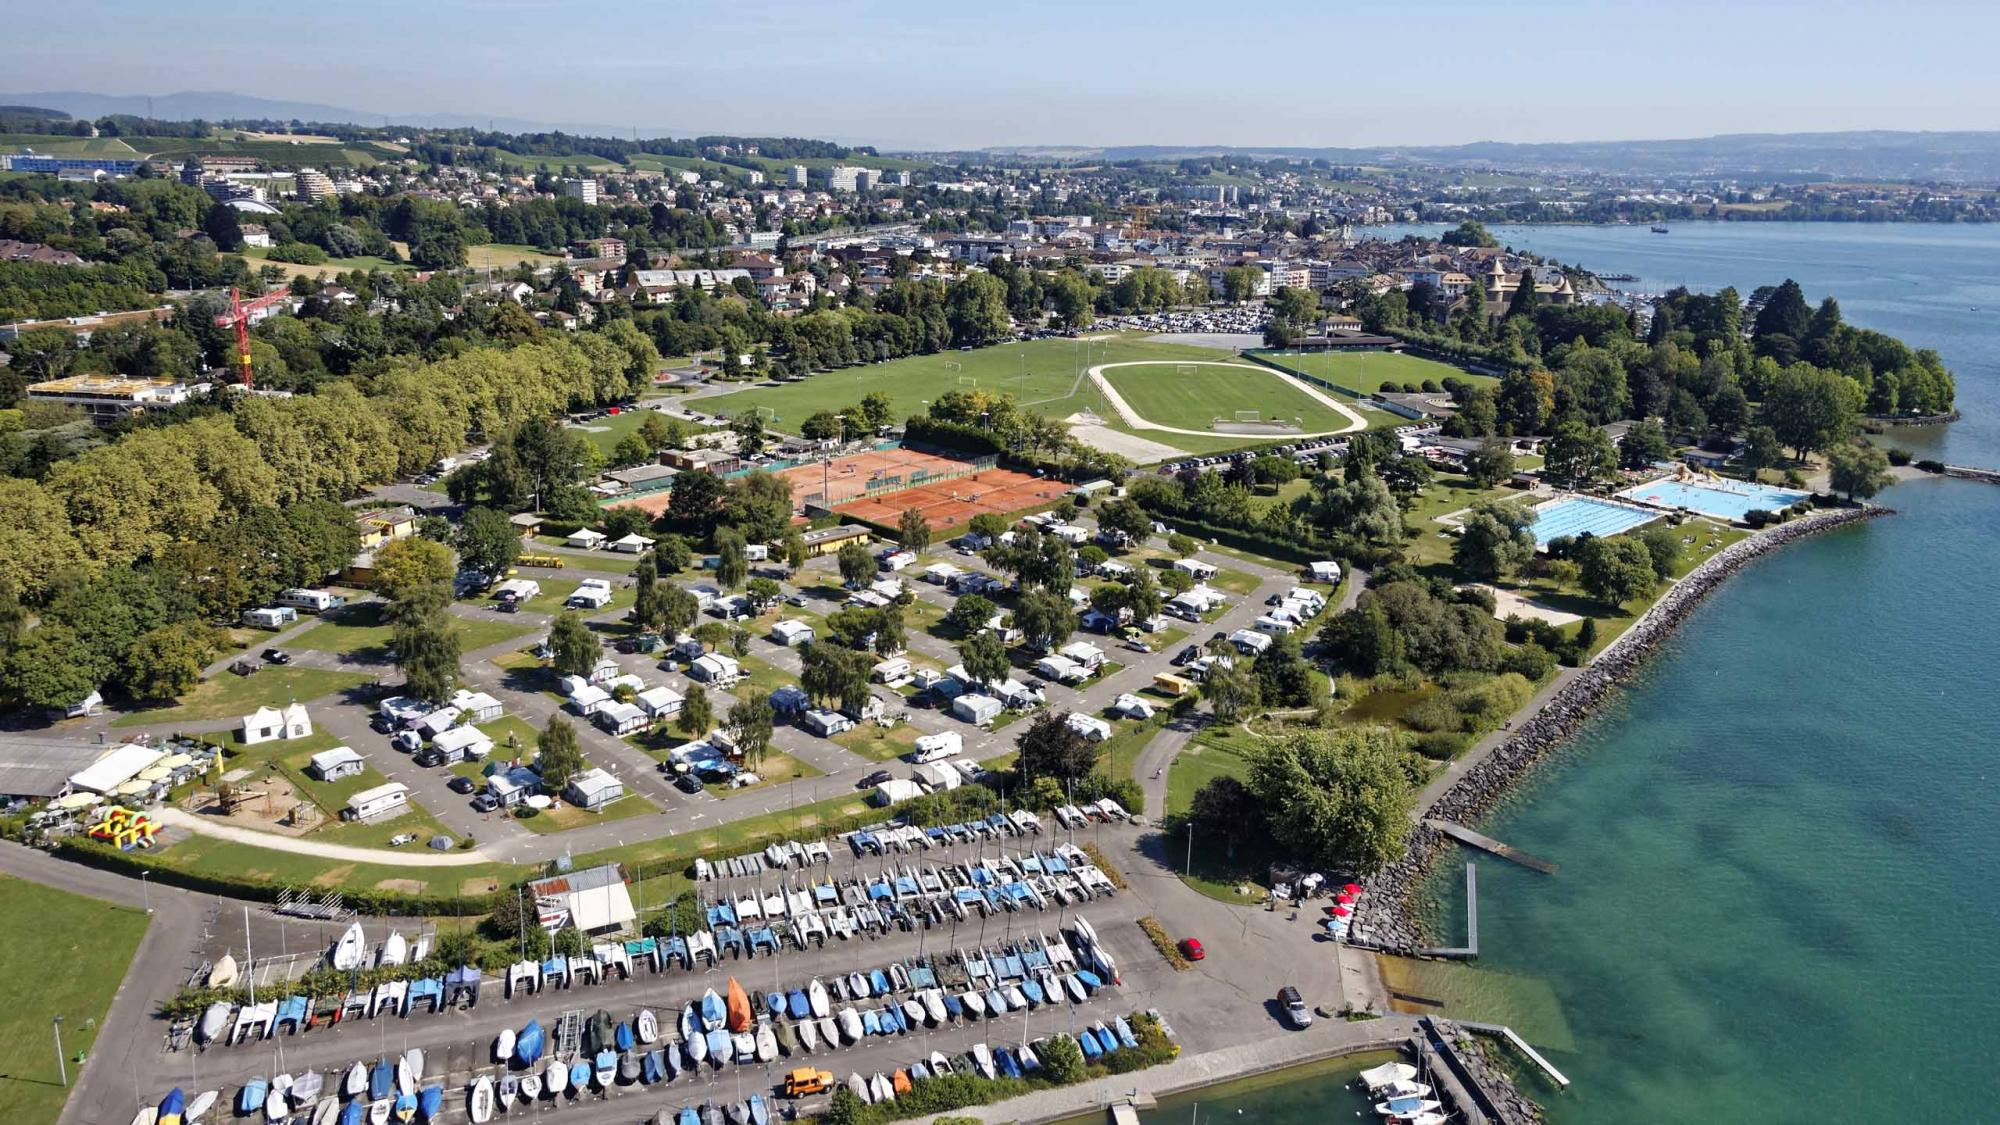 Camping tcs morges - Office du tourisme morges ...